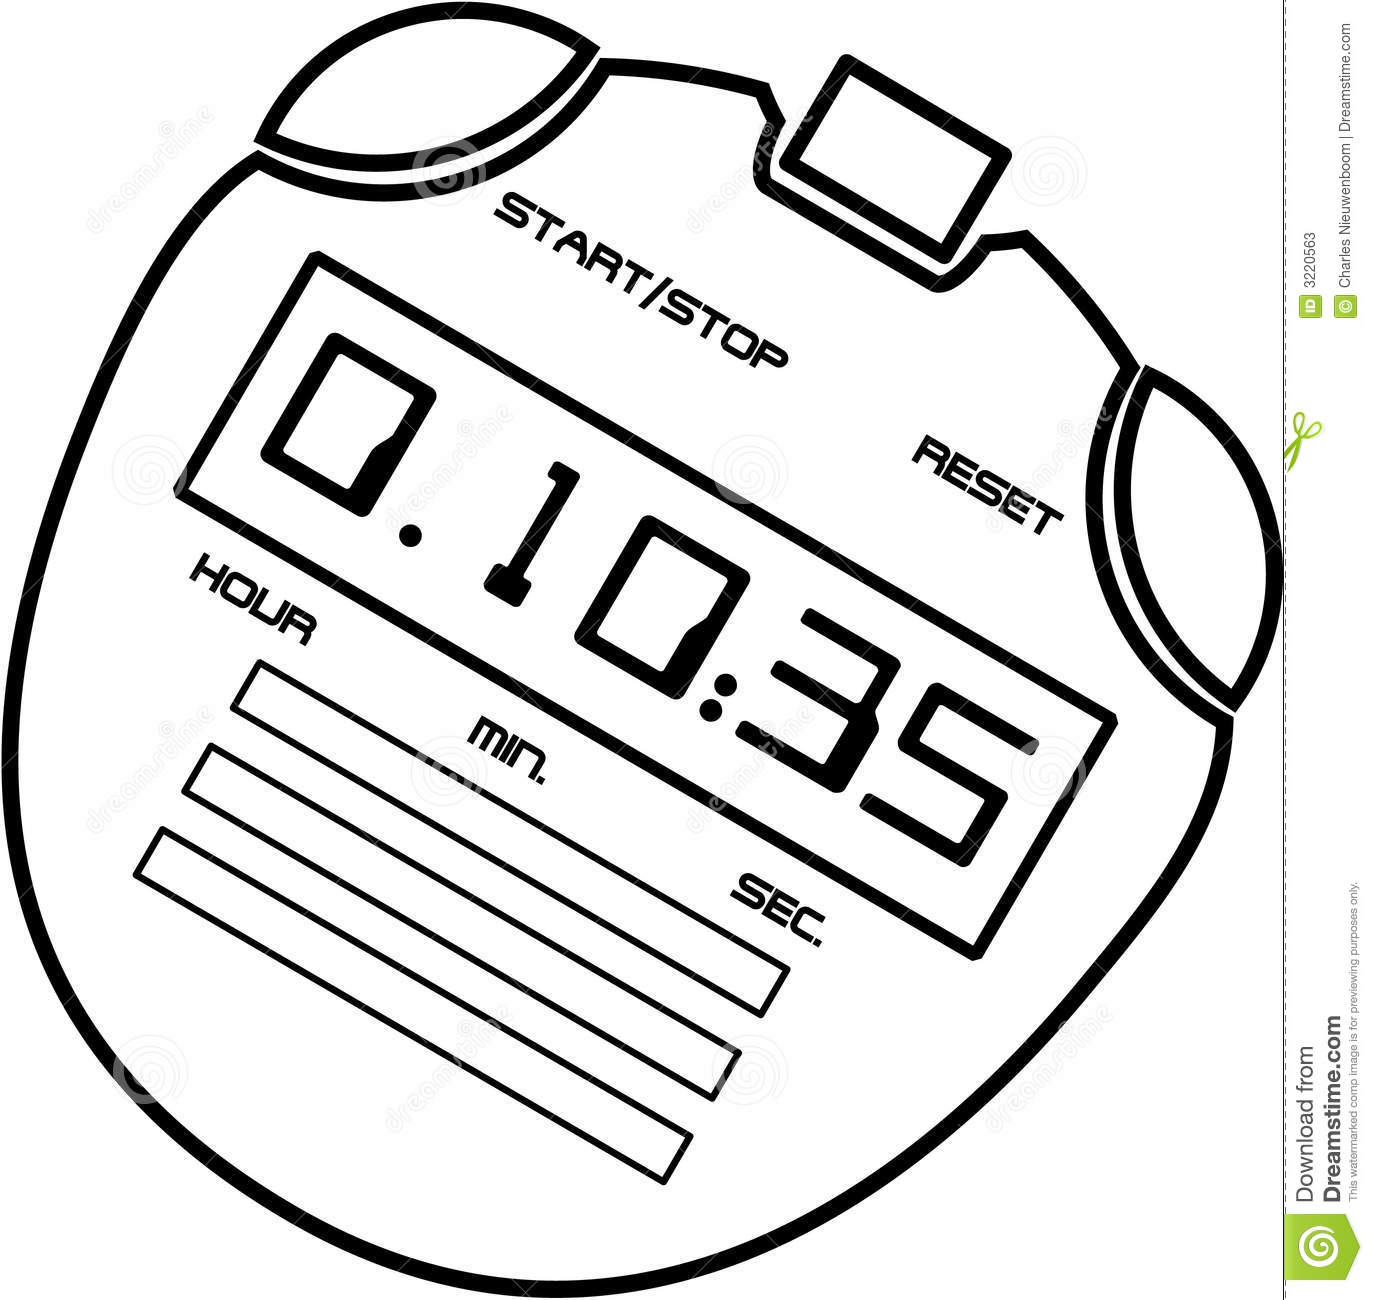 Stopwatch stock vector. Image of digital, start, button